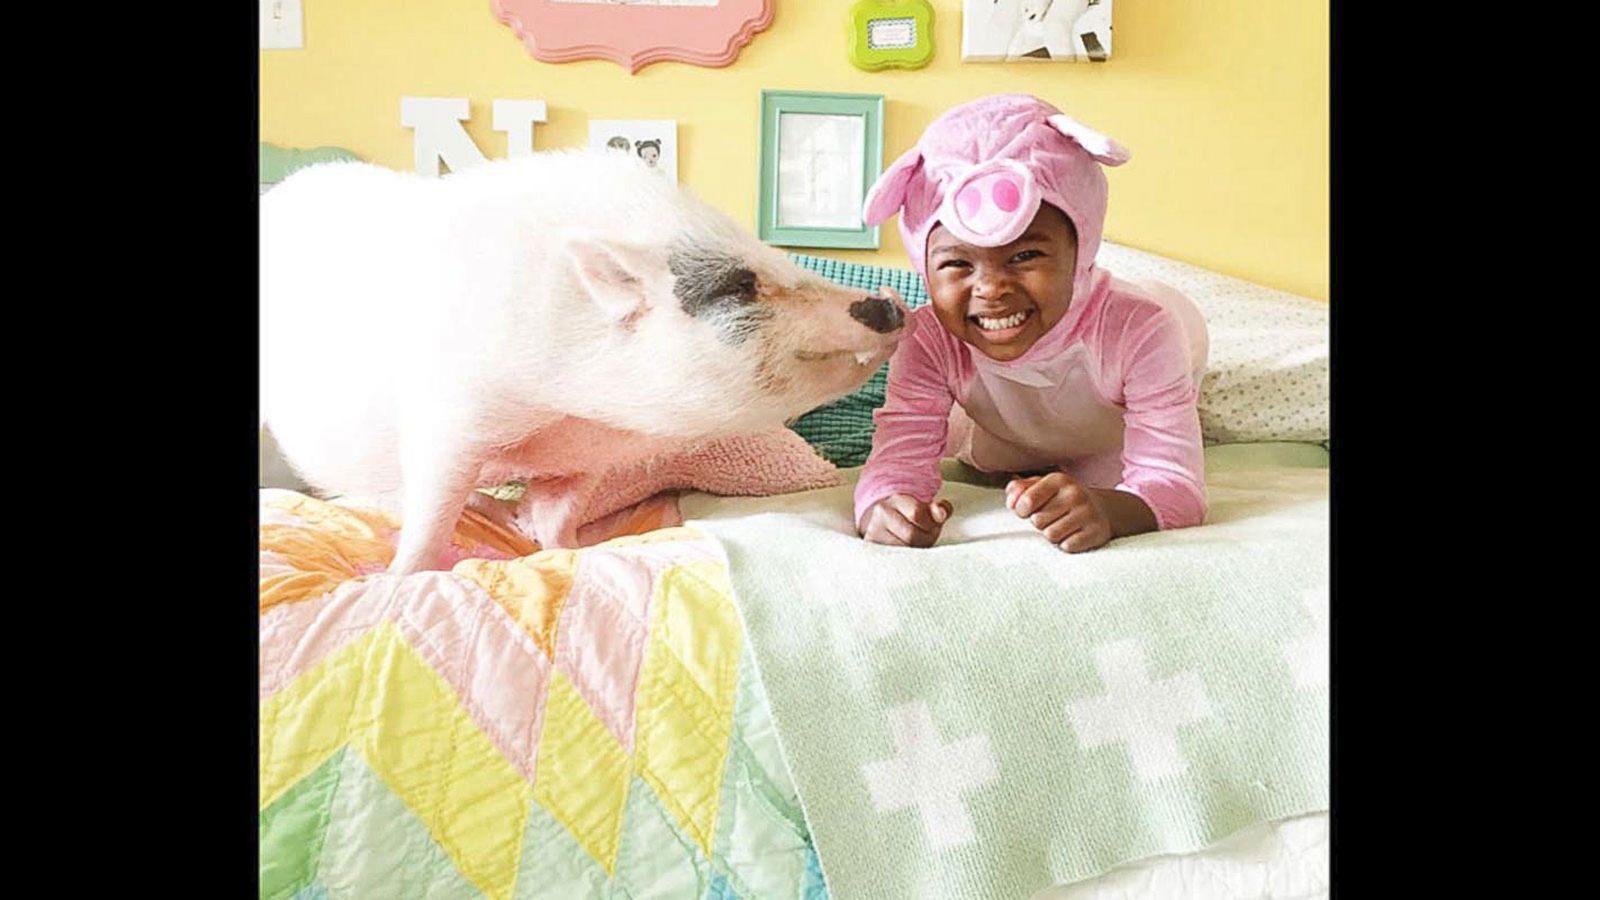 VIDEO: Kids Dress Up for Halloween With Their Fluffy Farm Animals in Precious Photos